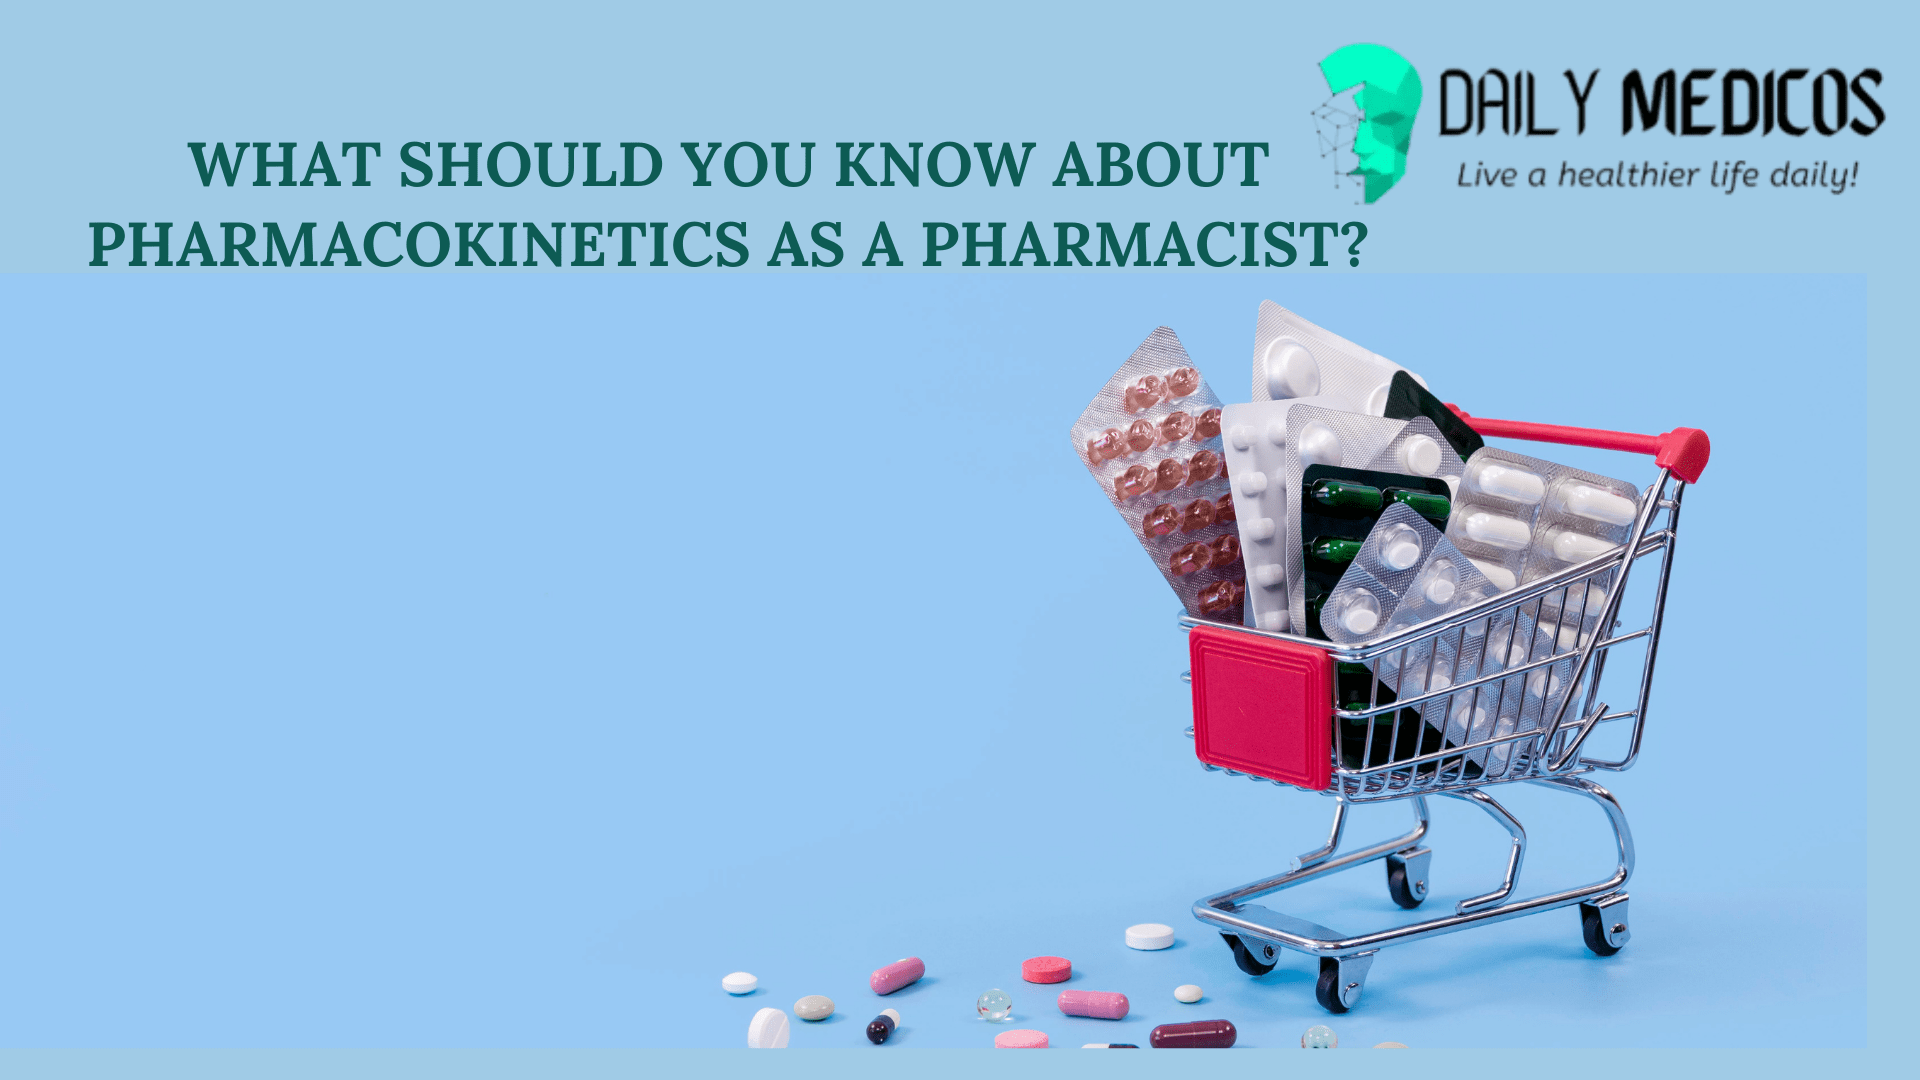 What should you know about pharmacokinetics as a pharmacist? 1 - Daily Medicos